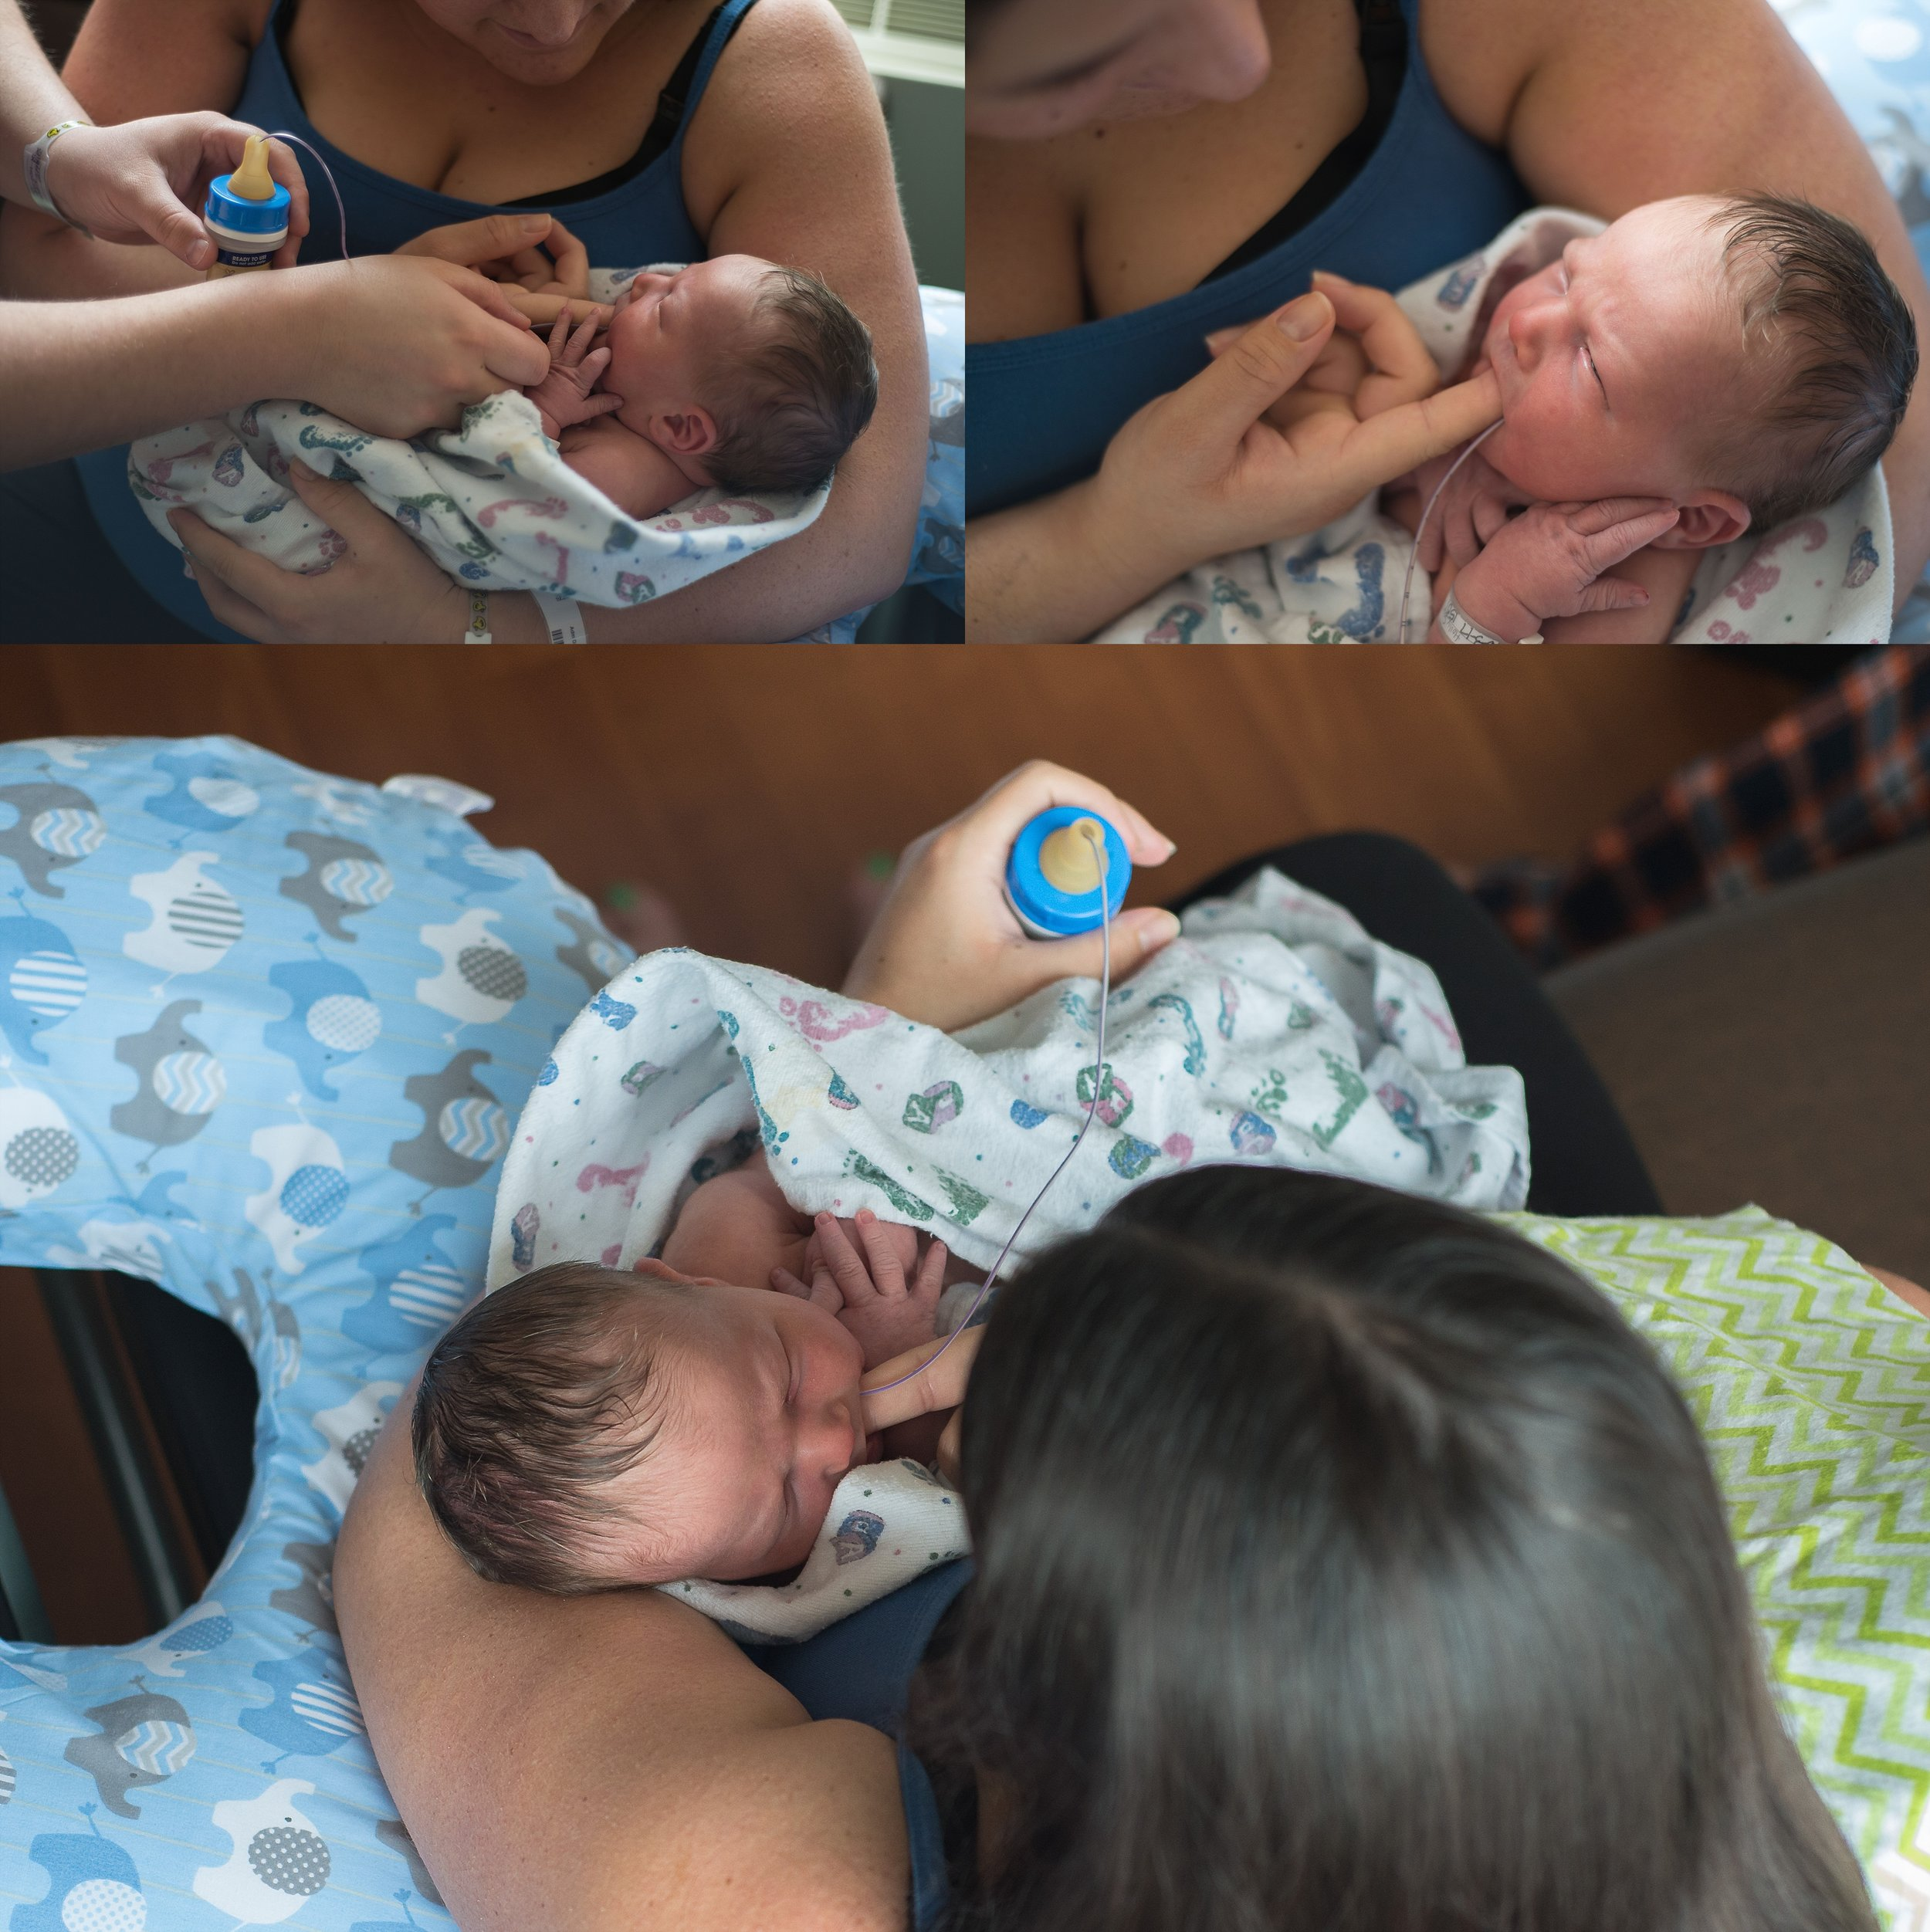 Mom and dad finger feed baby to encourage great latch habits in a breastfeeding baby.